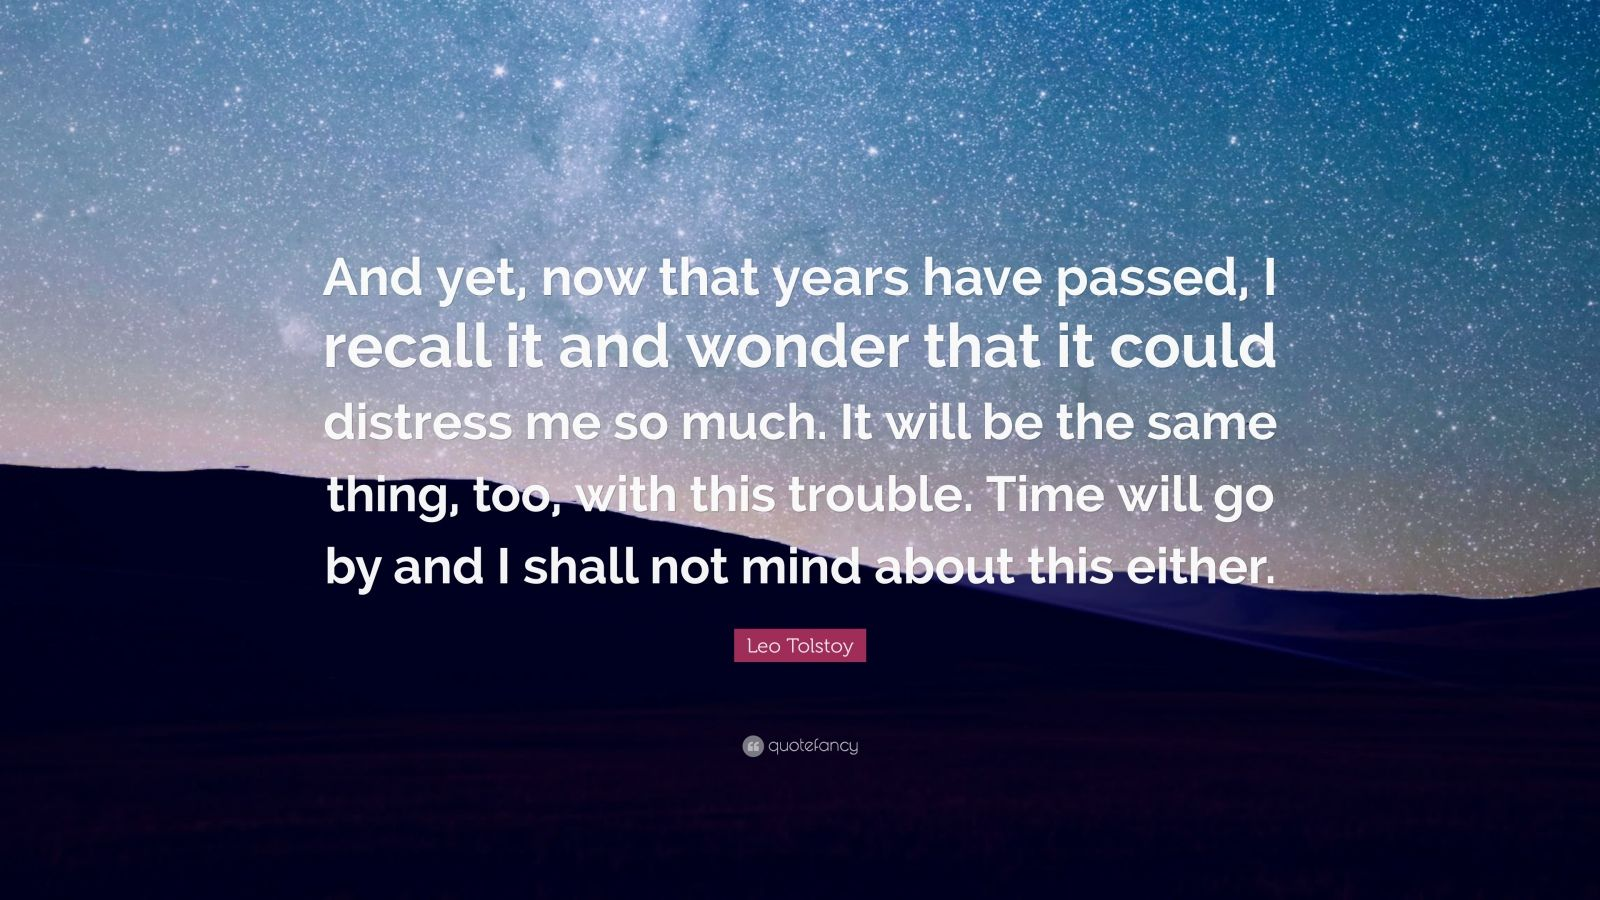 """Leo Tolstoy Quote: """"And yet, now that years have passed, I recall it and wonder that it could distress me so much. It will be the same thing, too, with this trouble. Time will go by and I shall not mind about this either."""""""